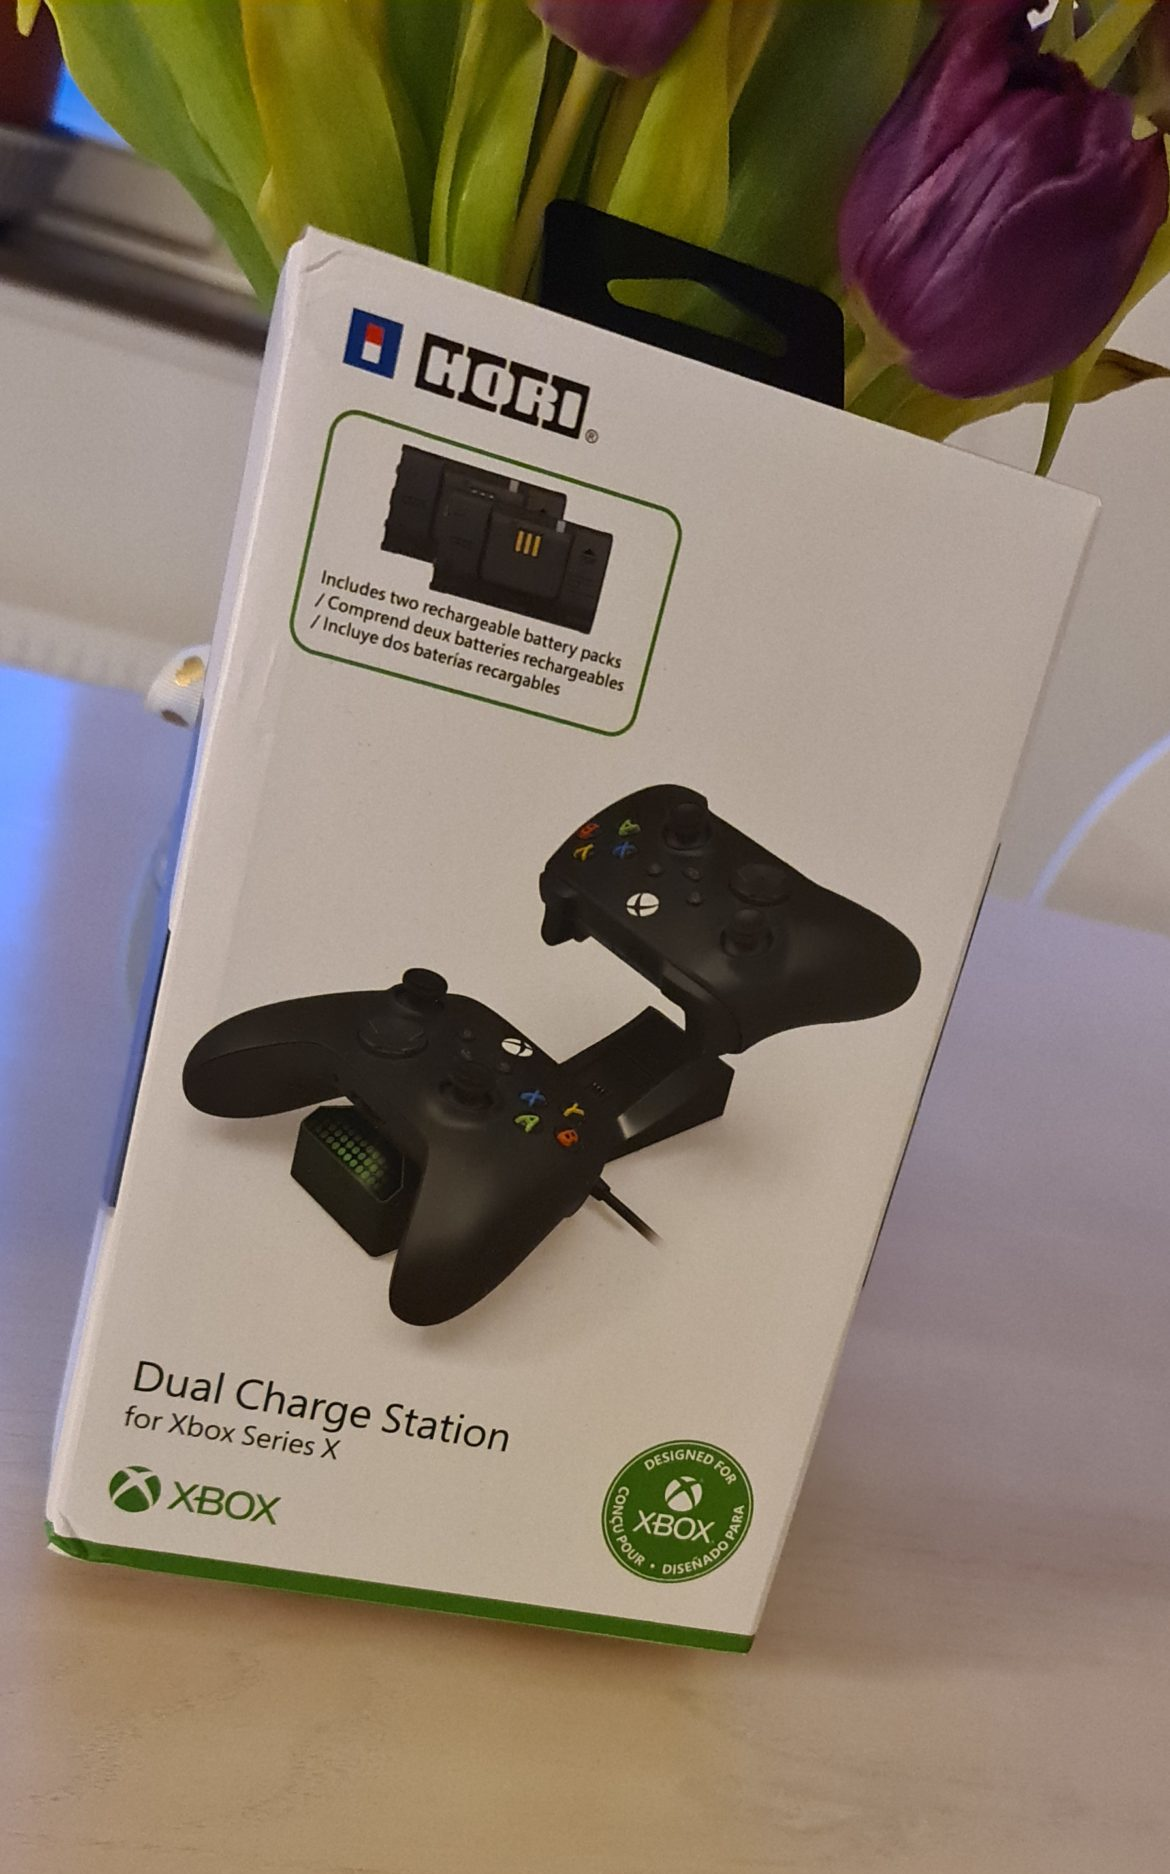 Hori dual charge station xbox